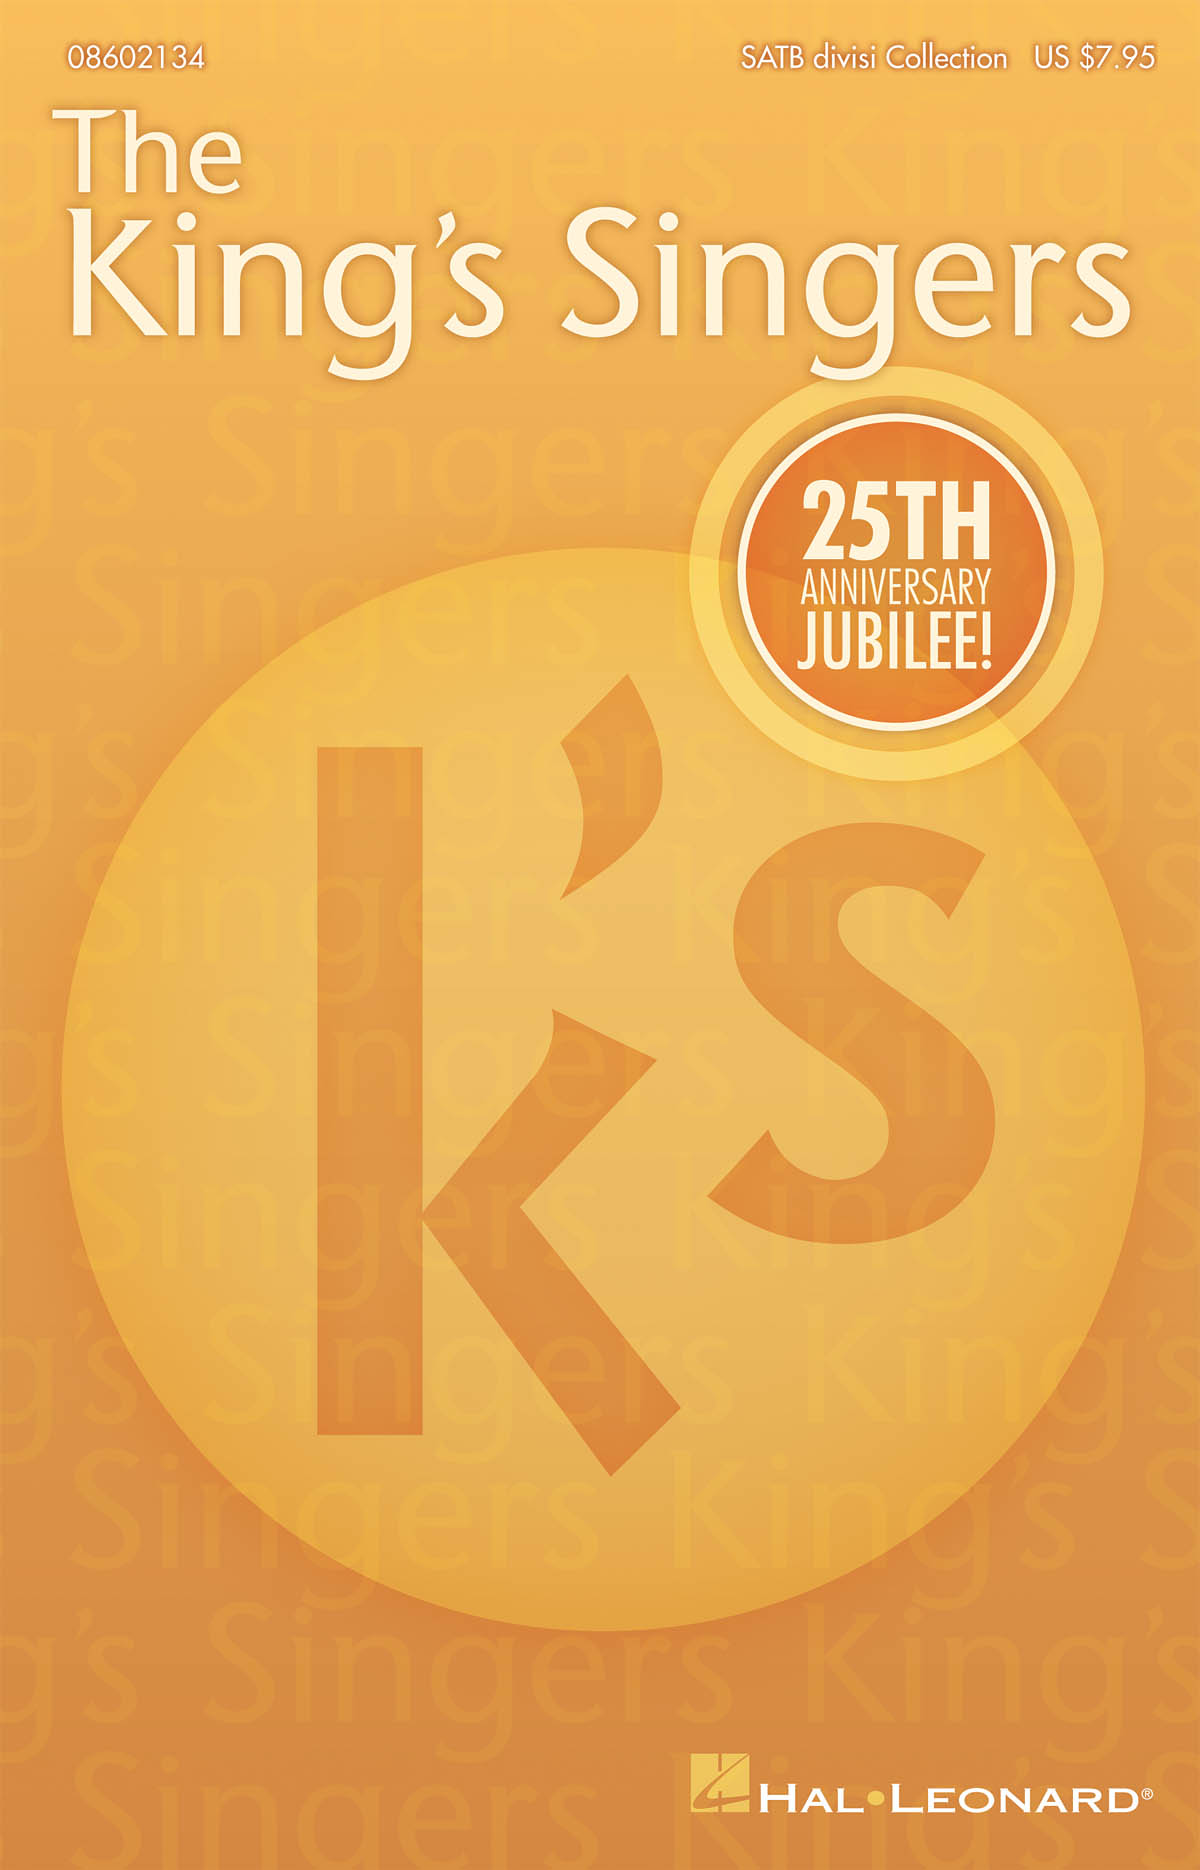 The King's Singers: The King's Singers' 25th Anniversary Jubilee: SATB: Vocal